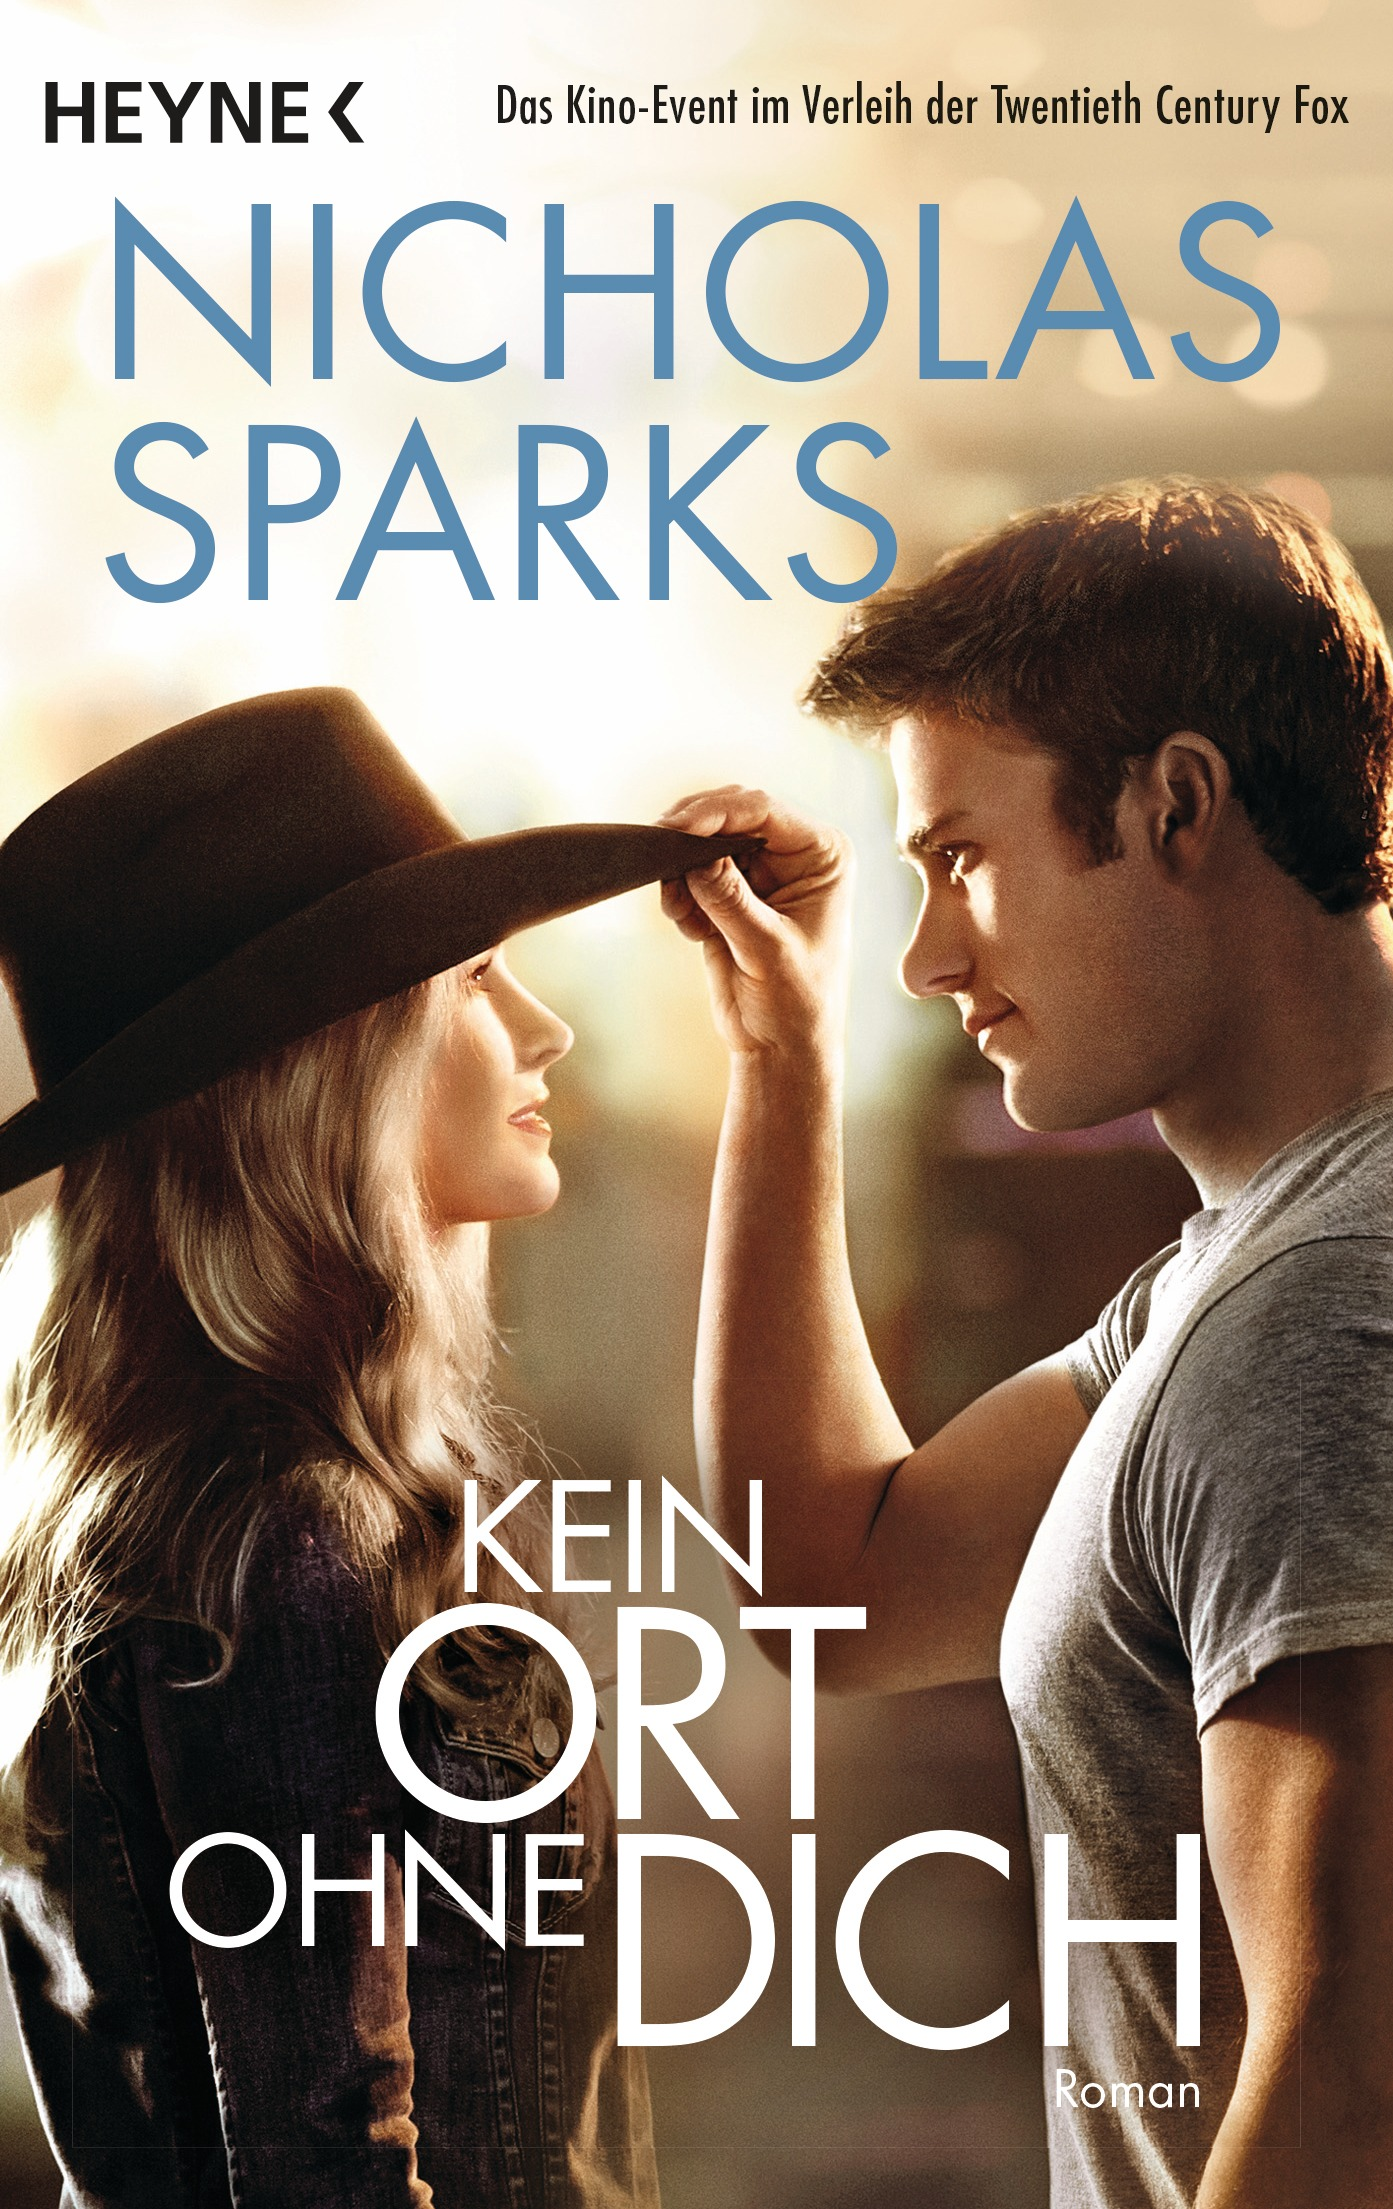 Kein Ort ohne dich - Nicholas Sparks